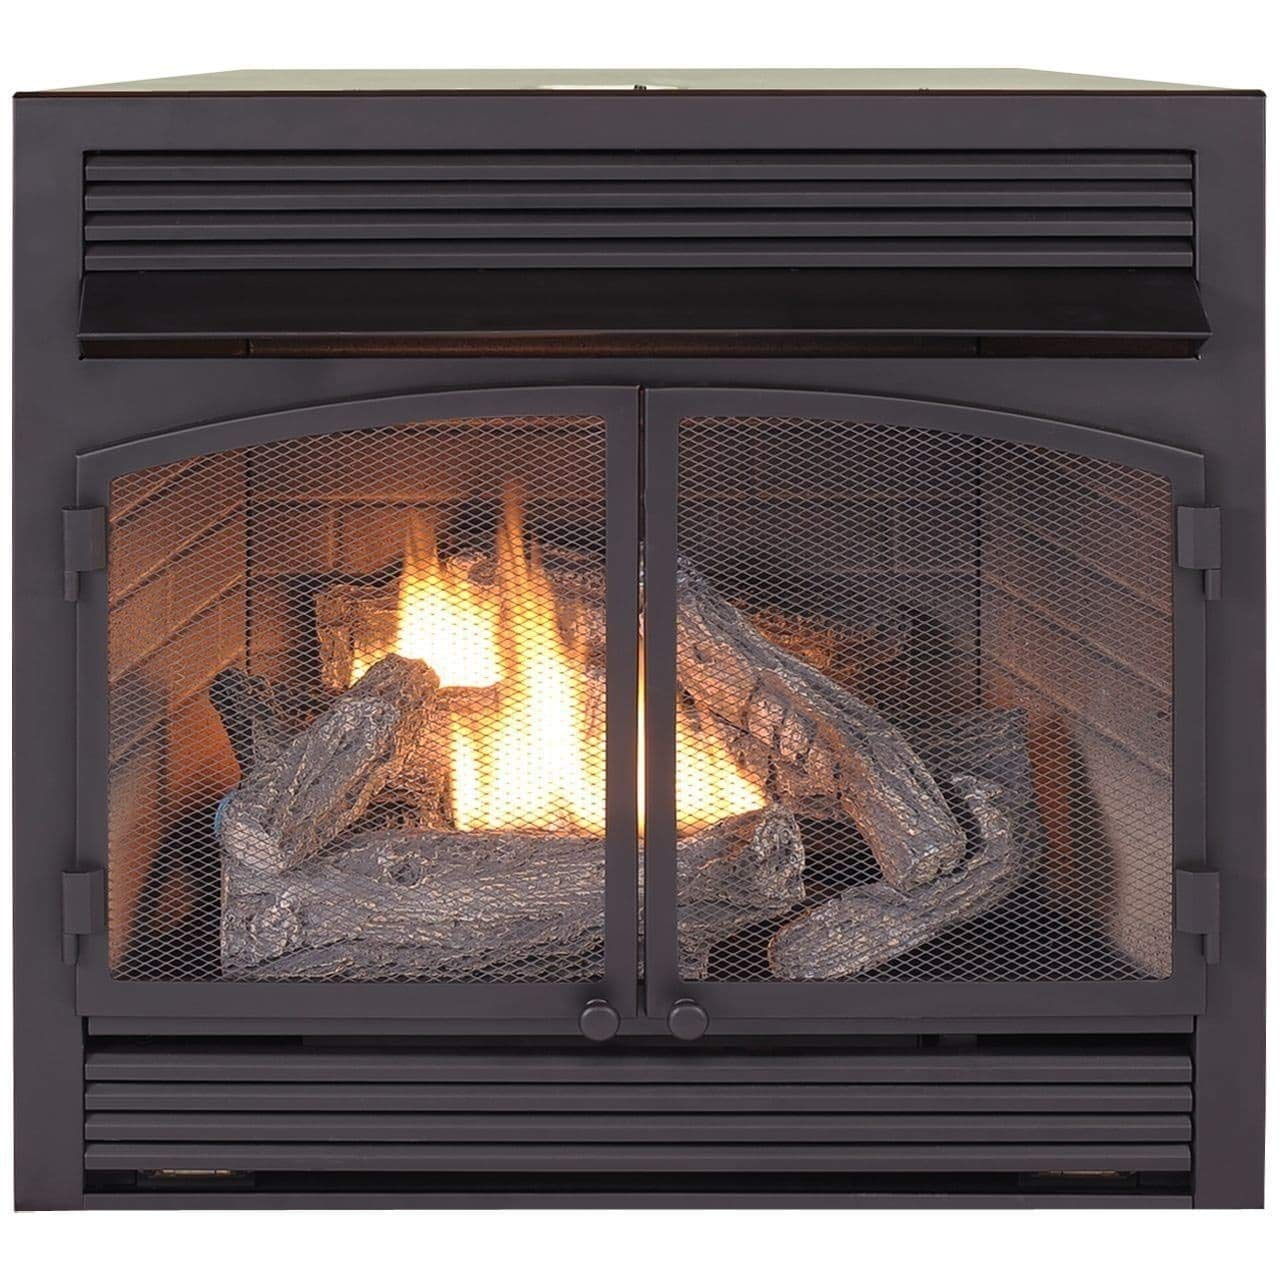 Duluth Forge Dual Fuel Ventless Insert-32,000 BTU, T-Stat Control Fireplace Insert by Duluth Forge